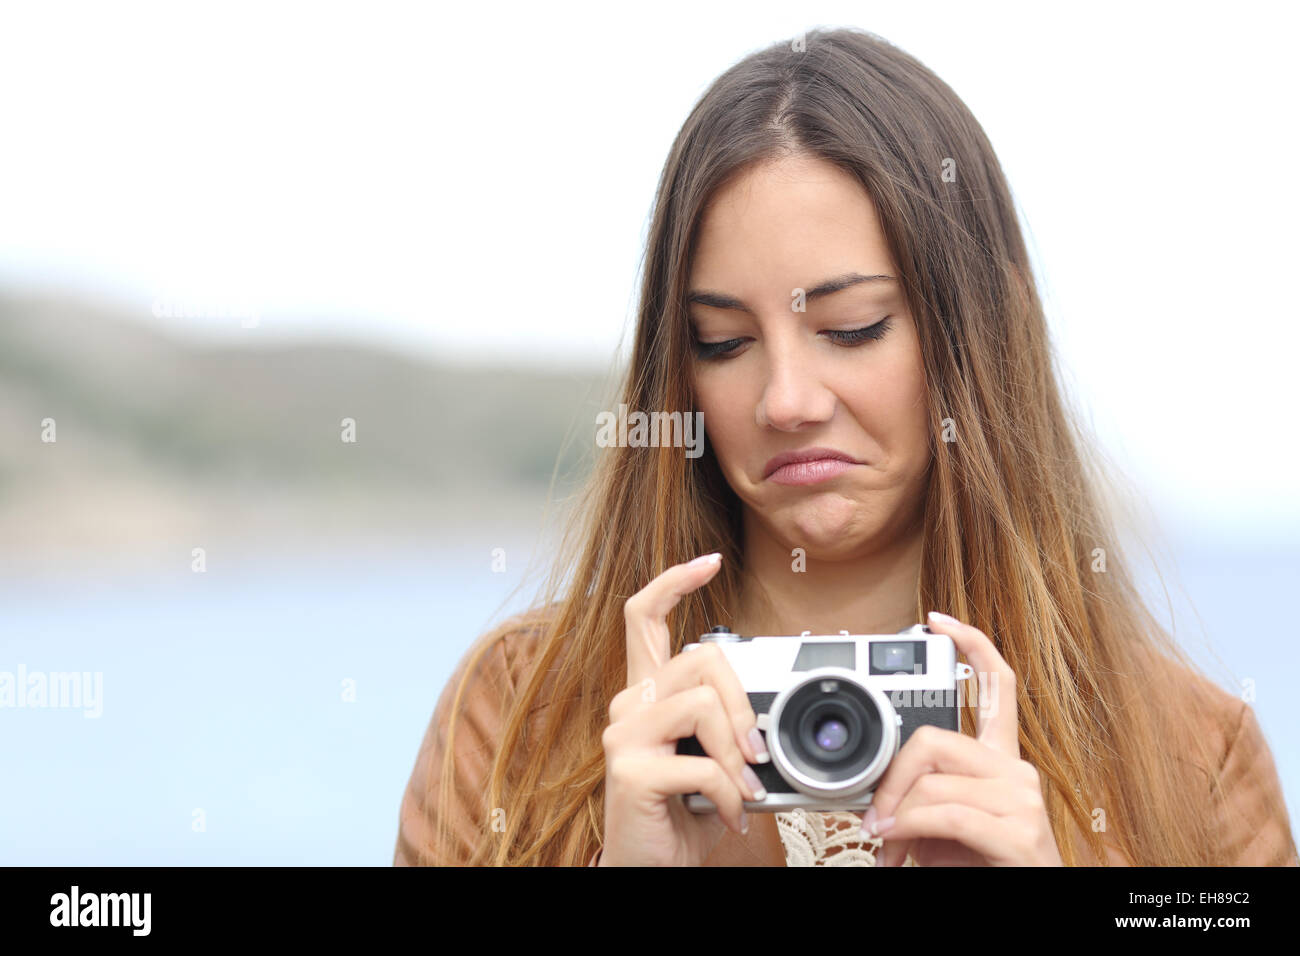 Upset photographer woman looking her old slr photo camera disgusted with the sea in the background - Stock Image